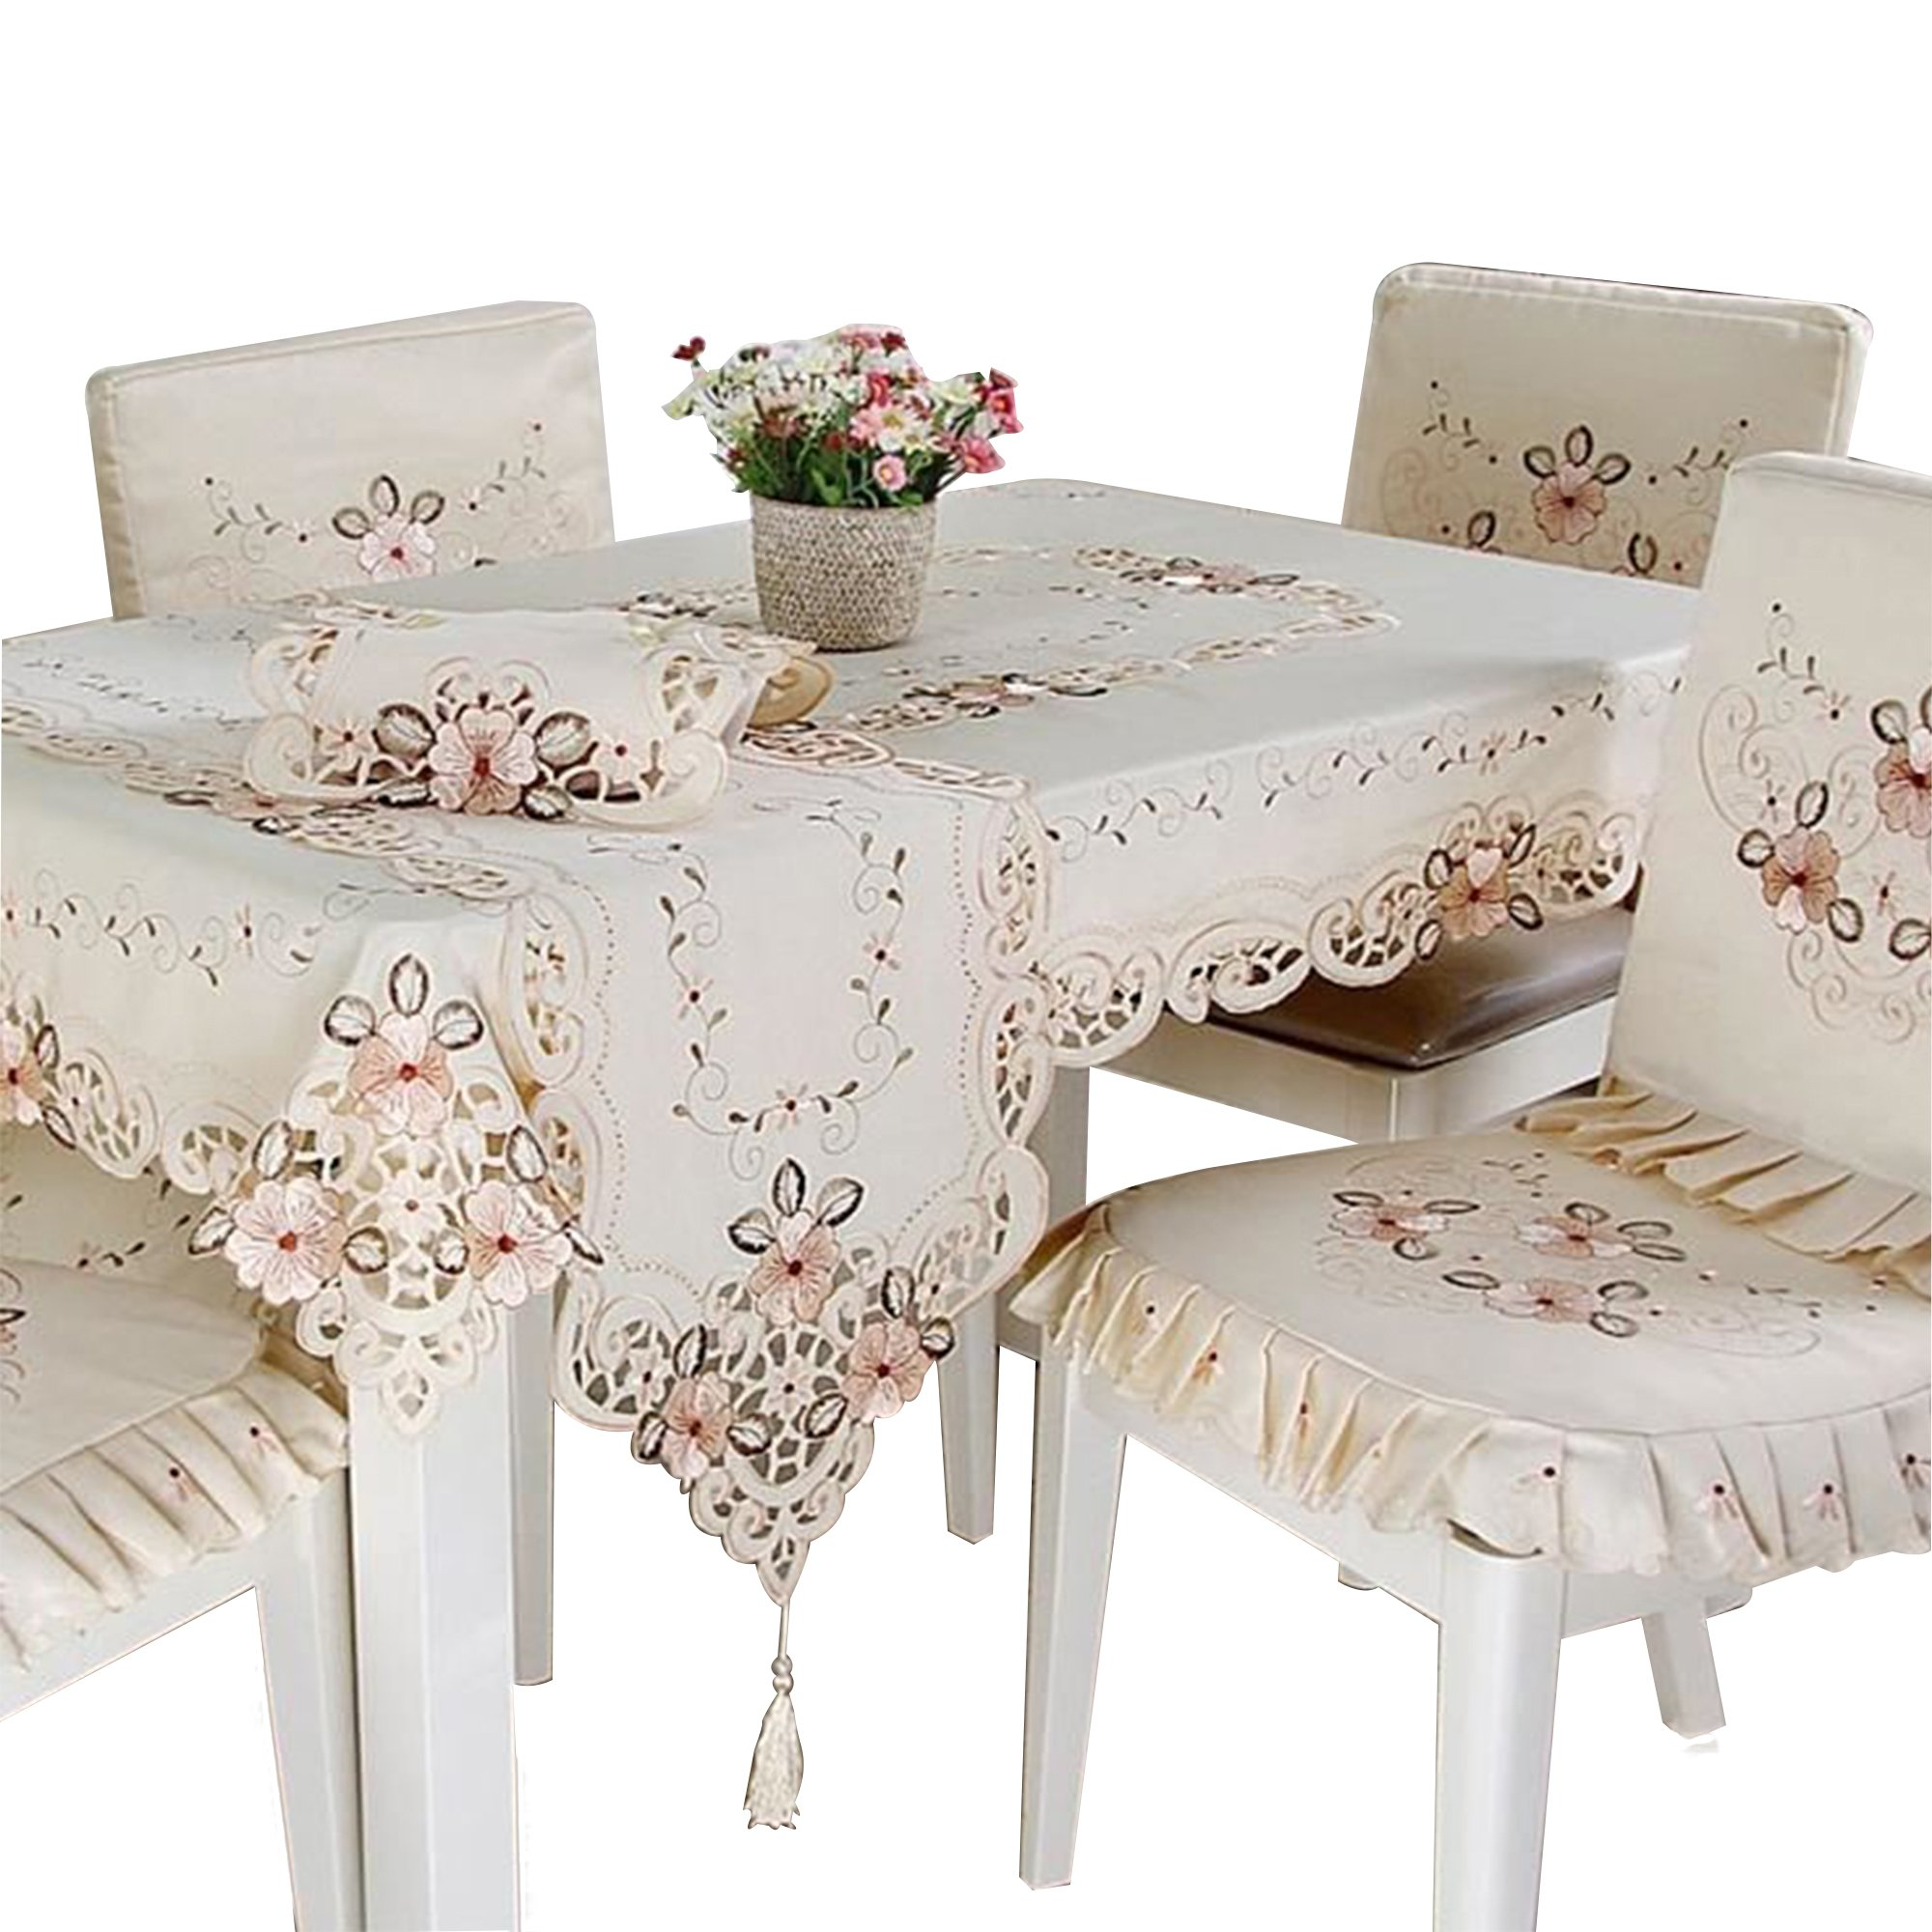 BeautiLife Luxury Table Runner Table Linens with Decorative Fringe for Spring, Summer, Family Dinners, Outdoor Parties, Everyday Use by BeautiLife